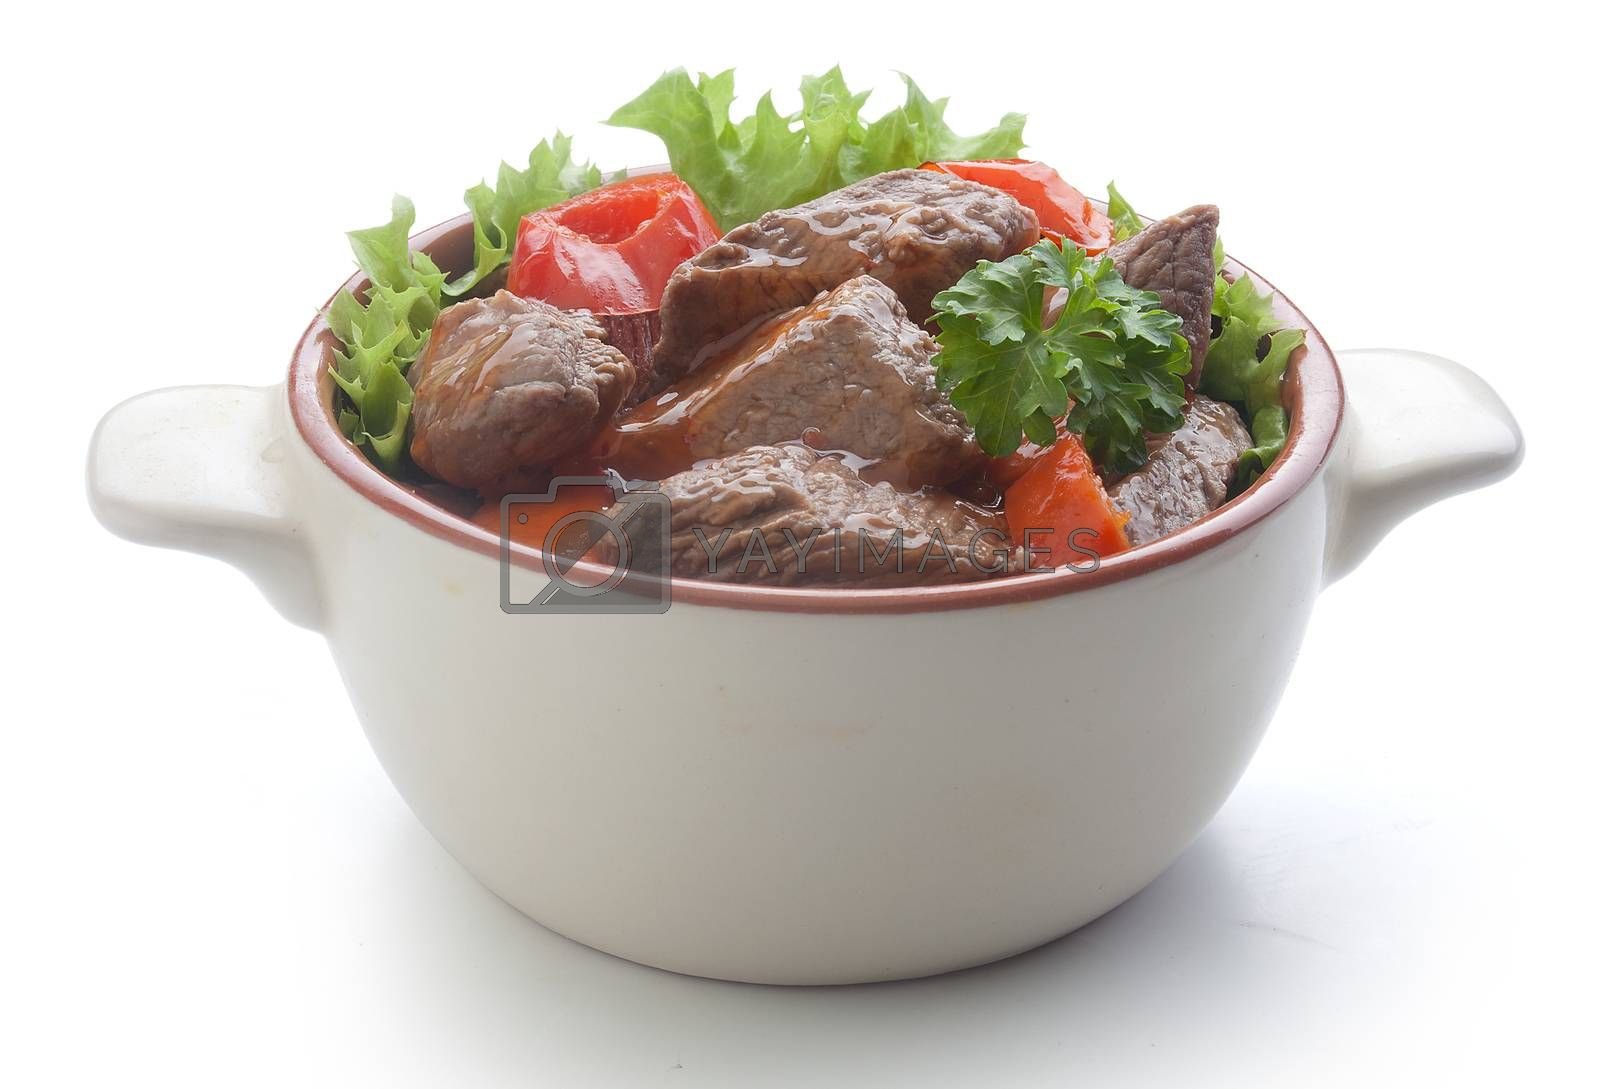 Royalty free image of Beef goulash with lettuce in the rural bowl by Angorius